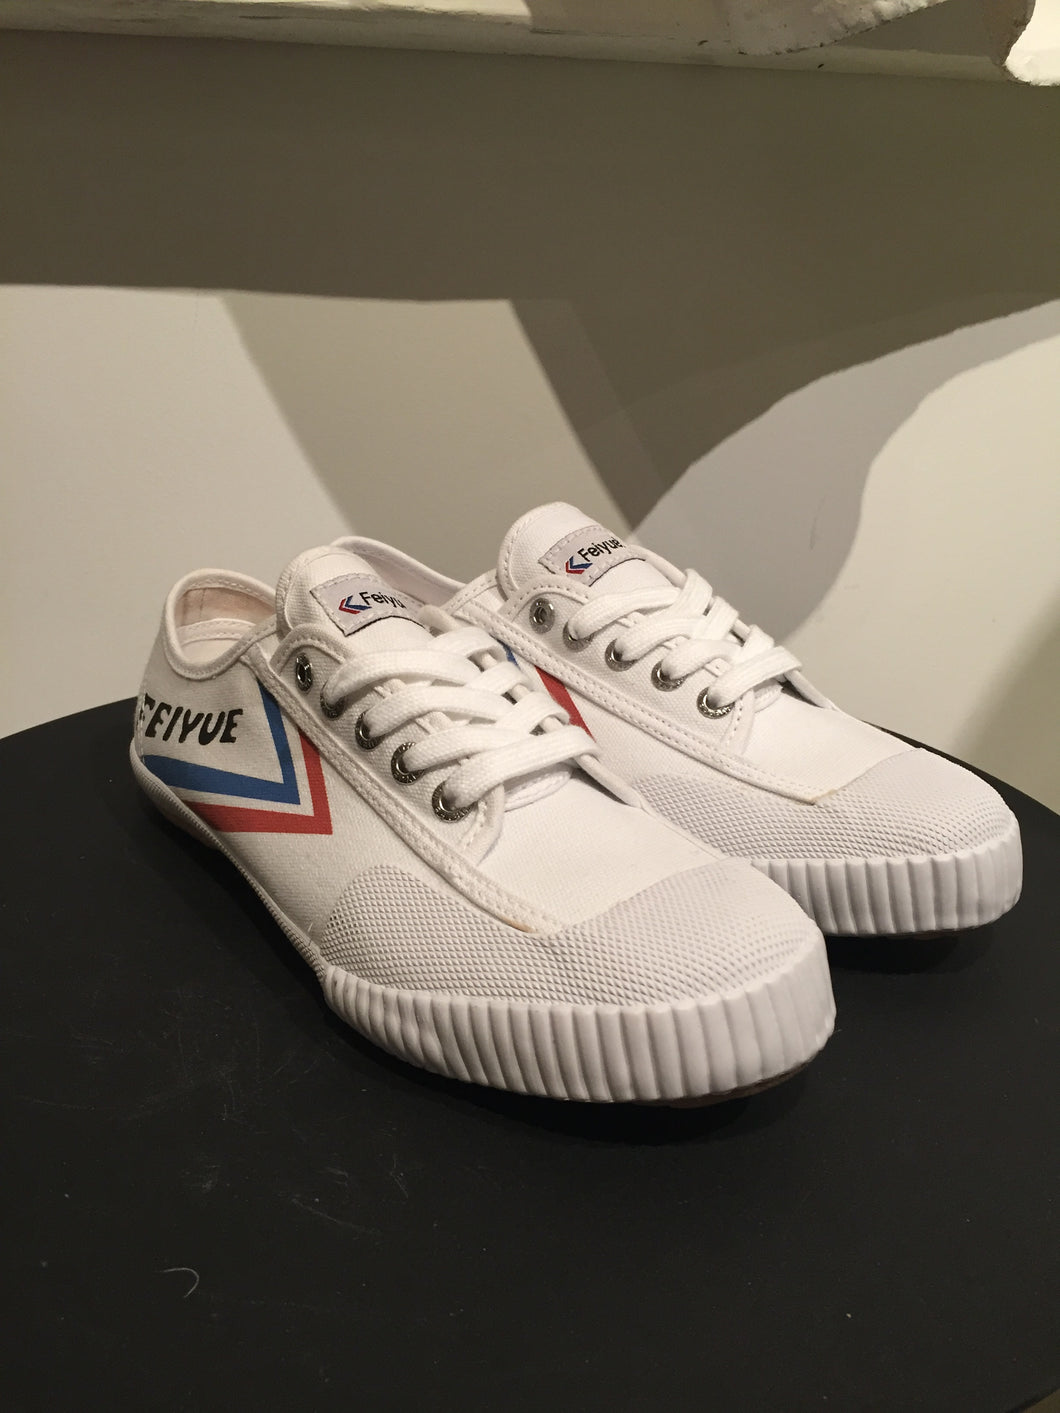 Feiyue White Sneakers